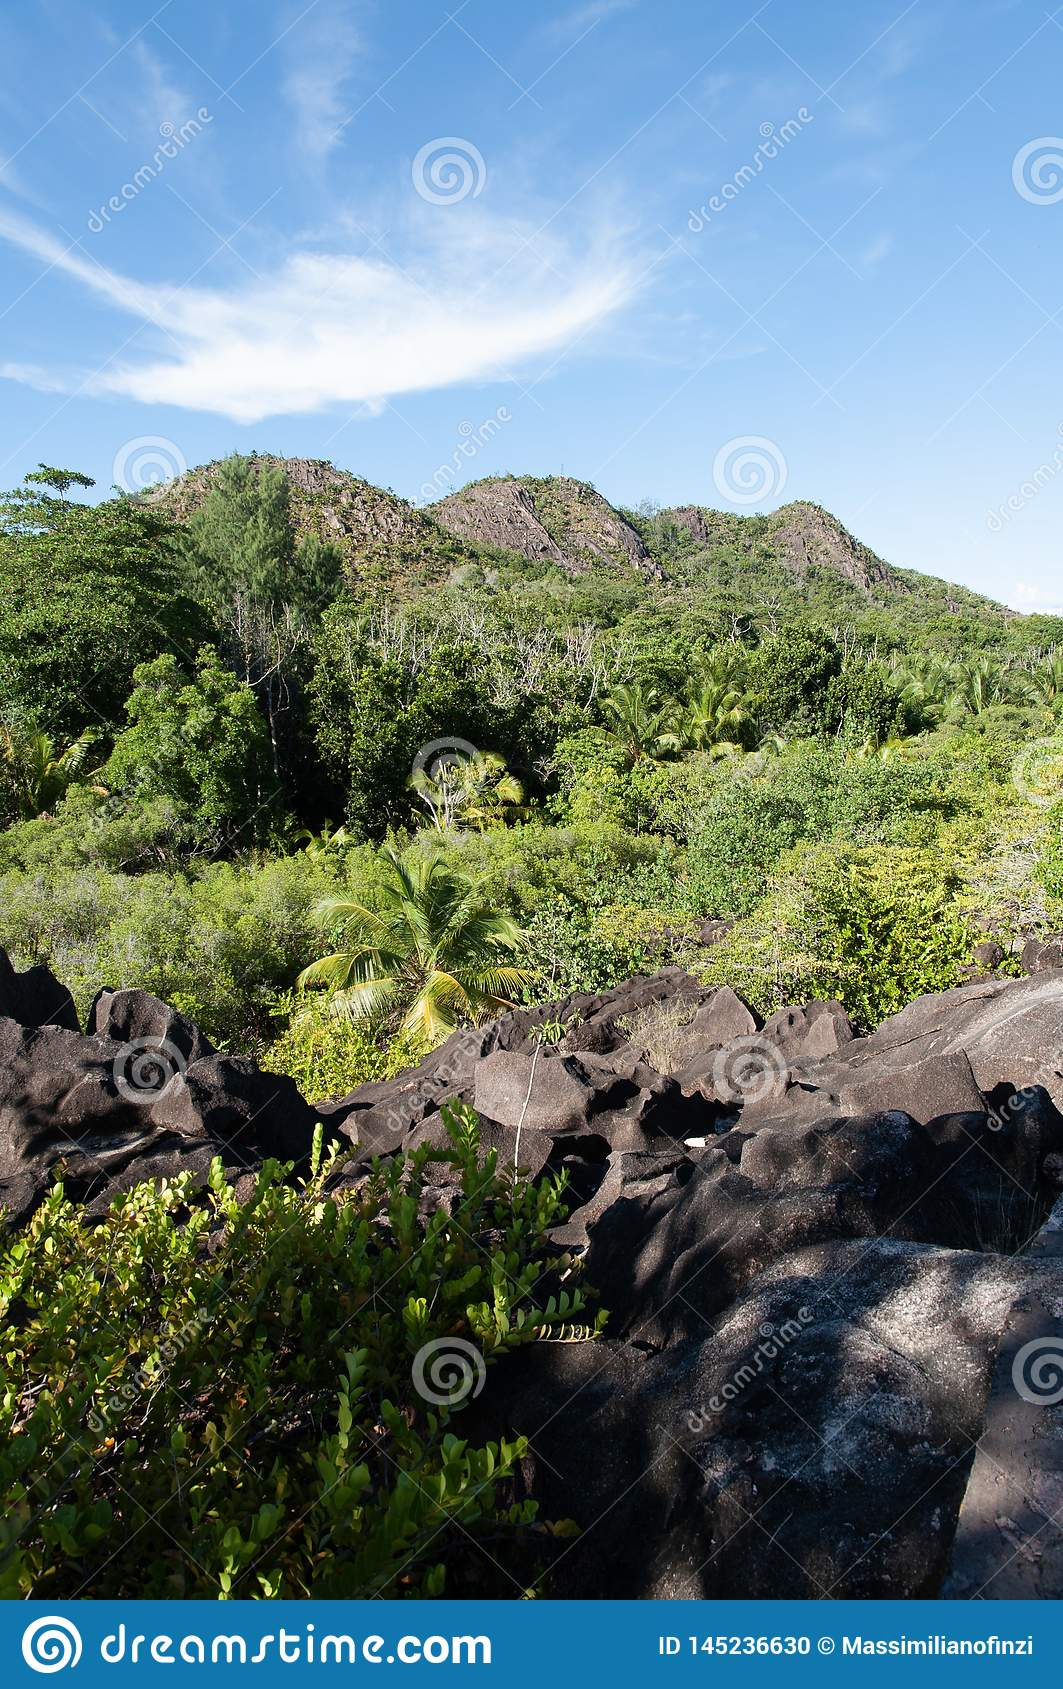 Lava stone formation into the bush in the natural park of curieuse island, Seychelles